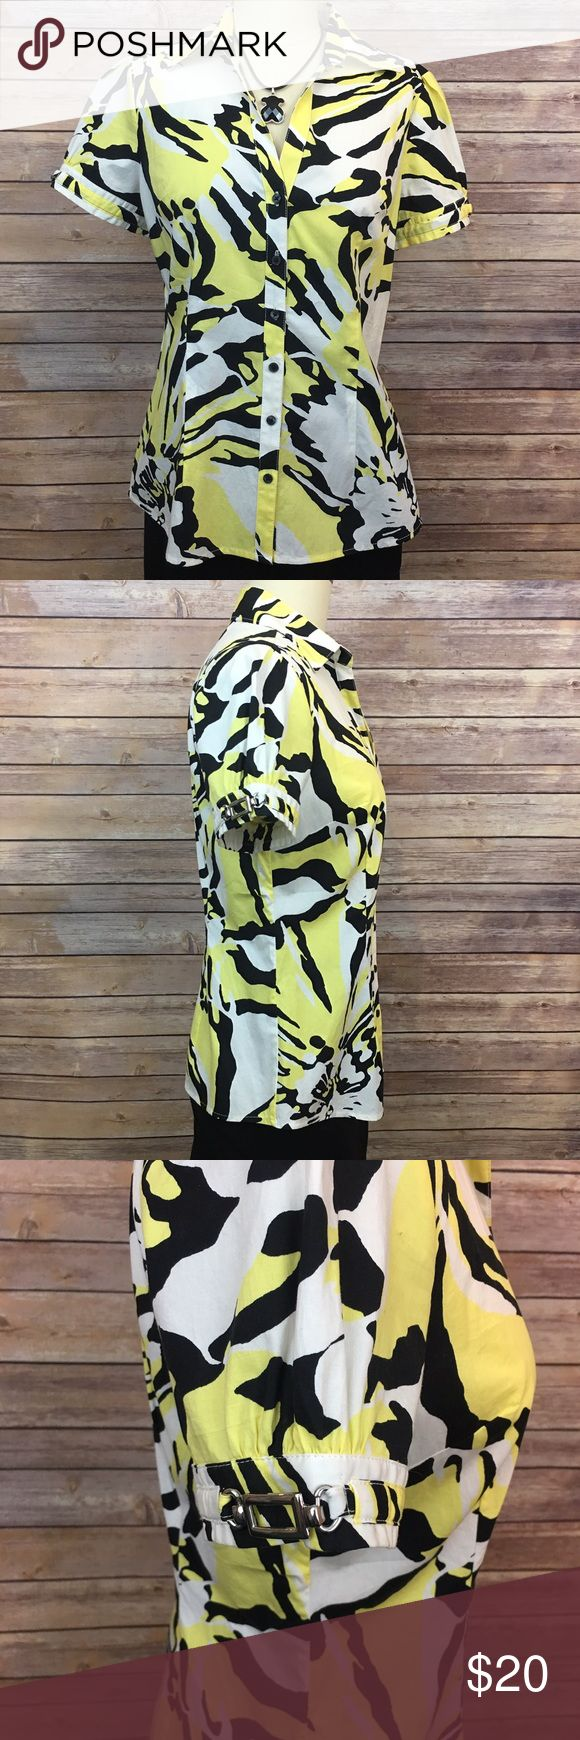 """❗1-DAY SALE❗Express Yellow, Black and White  Shirt Express Yellow, Black and White Short Sleeve Shirt. 97% cotton/ 3% spandex. Pit to pit 18""""/ length 24"""" Express Tops Button Down Shirts"""